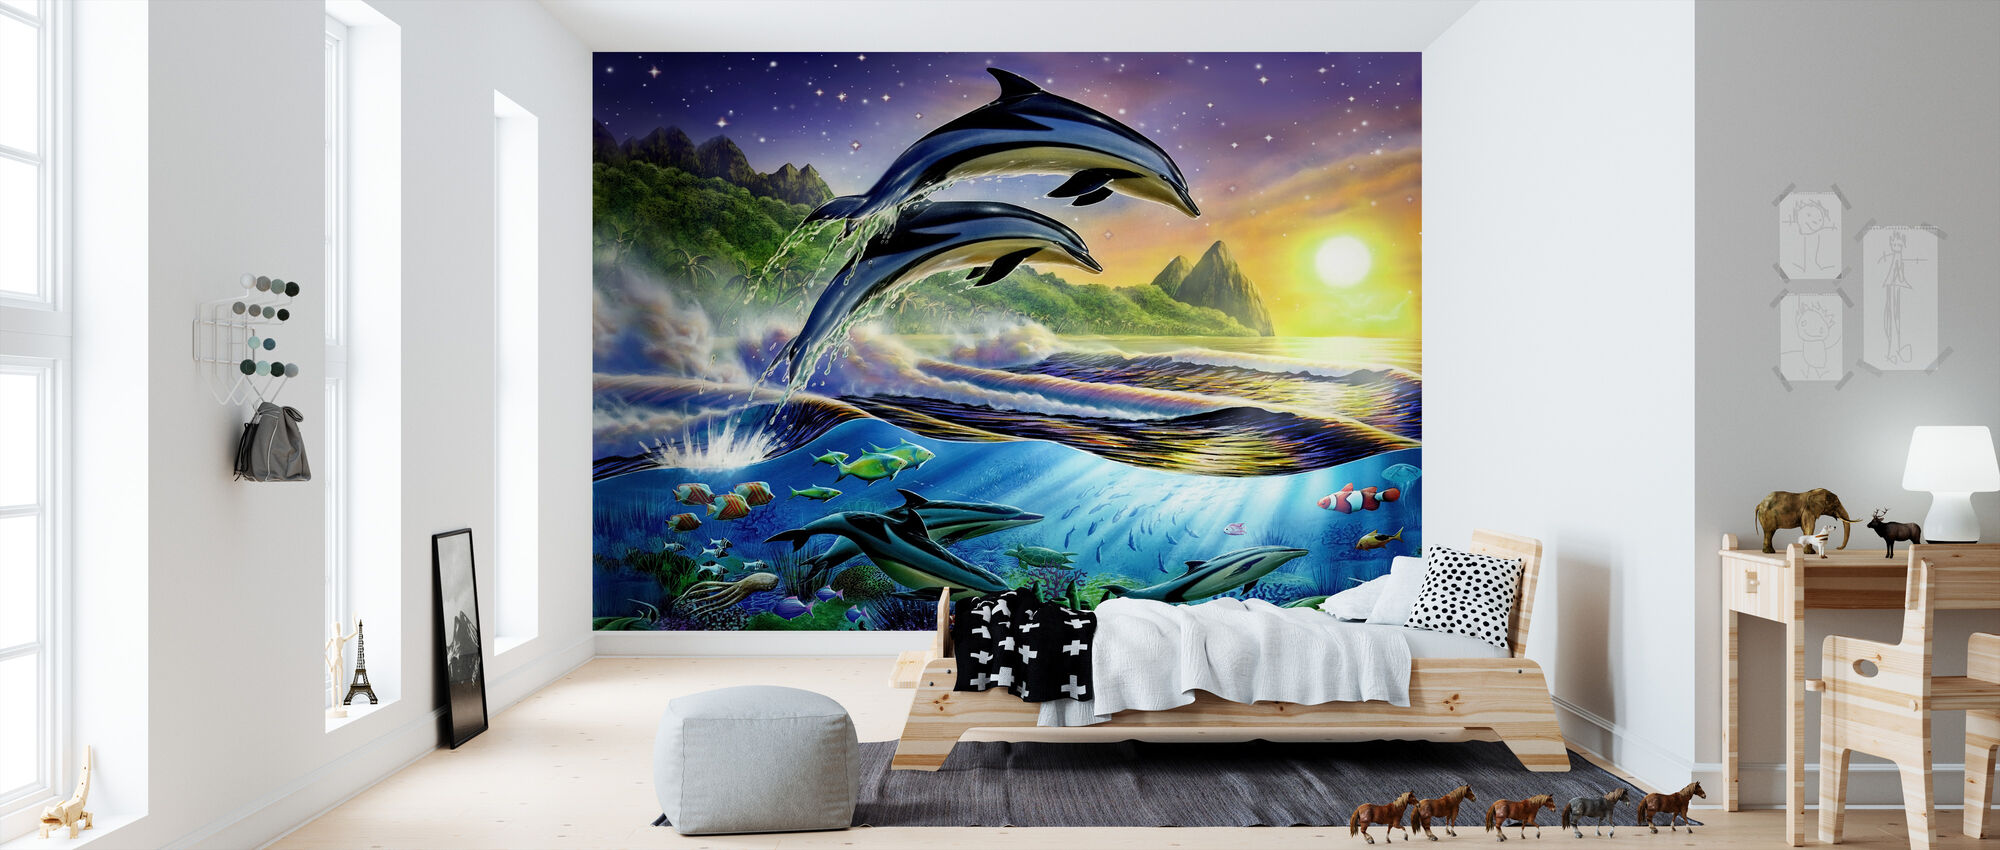 Atlantic Dolphins - Wallpaper - Kids Room